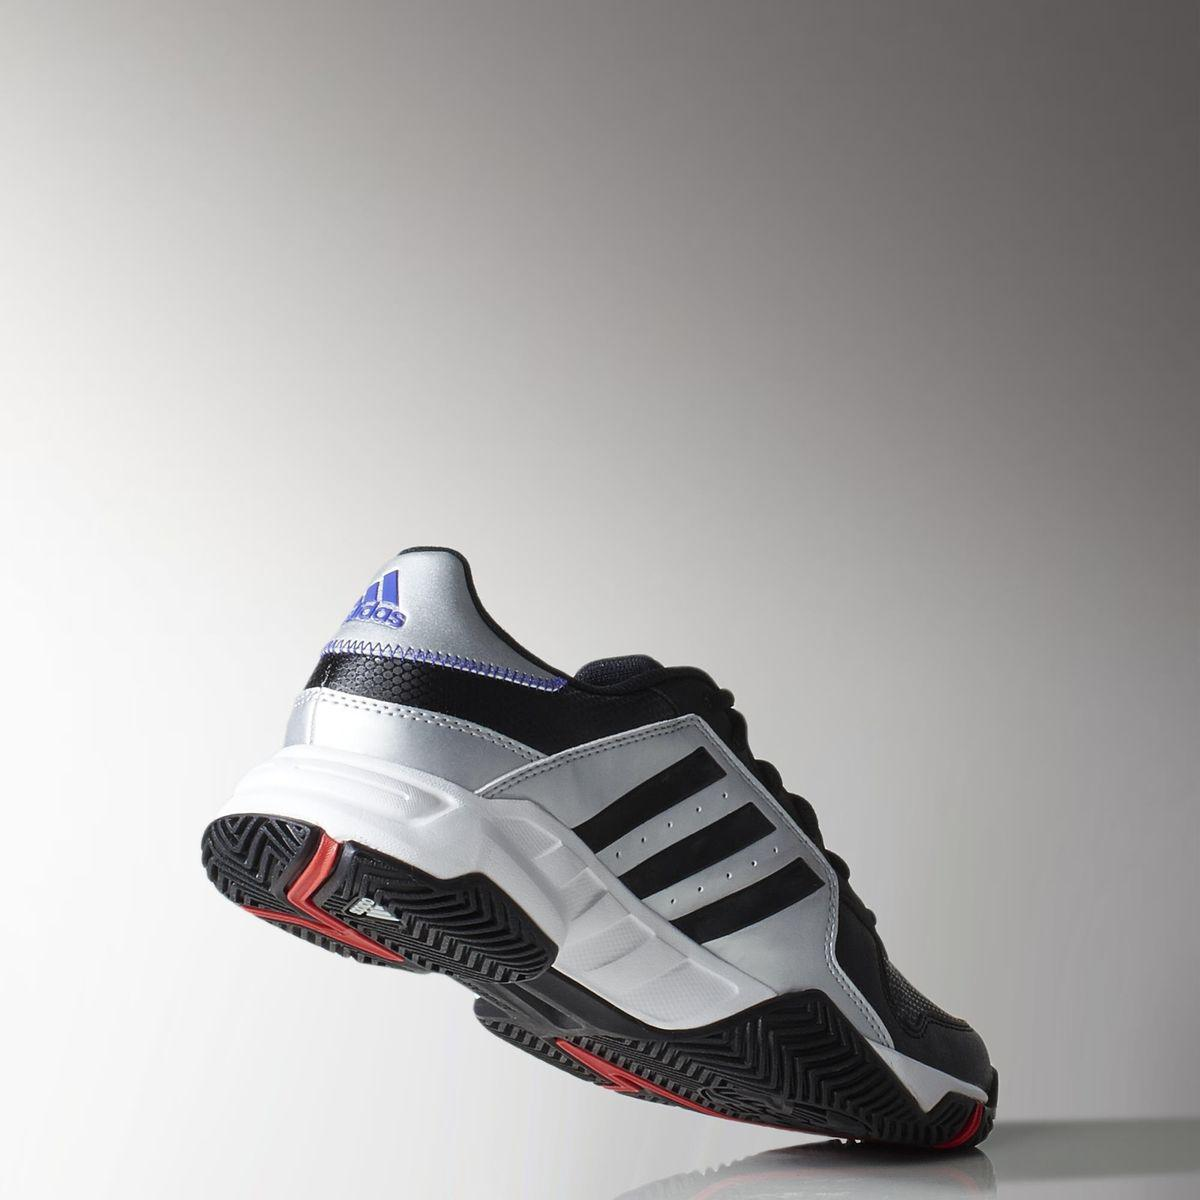 Adidas Free Pair Of Shoes